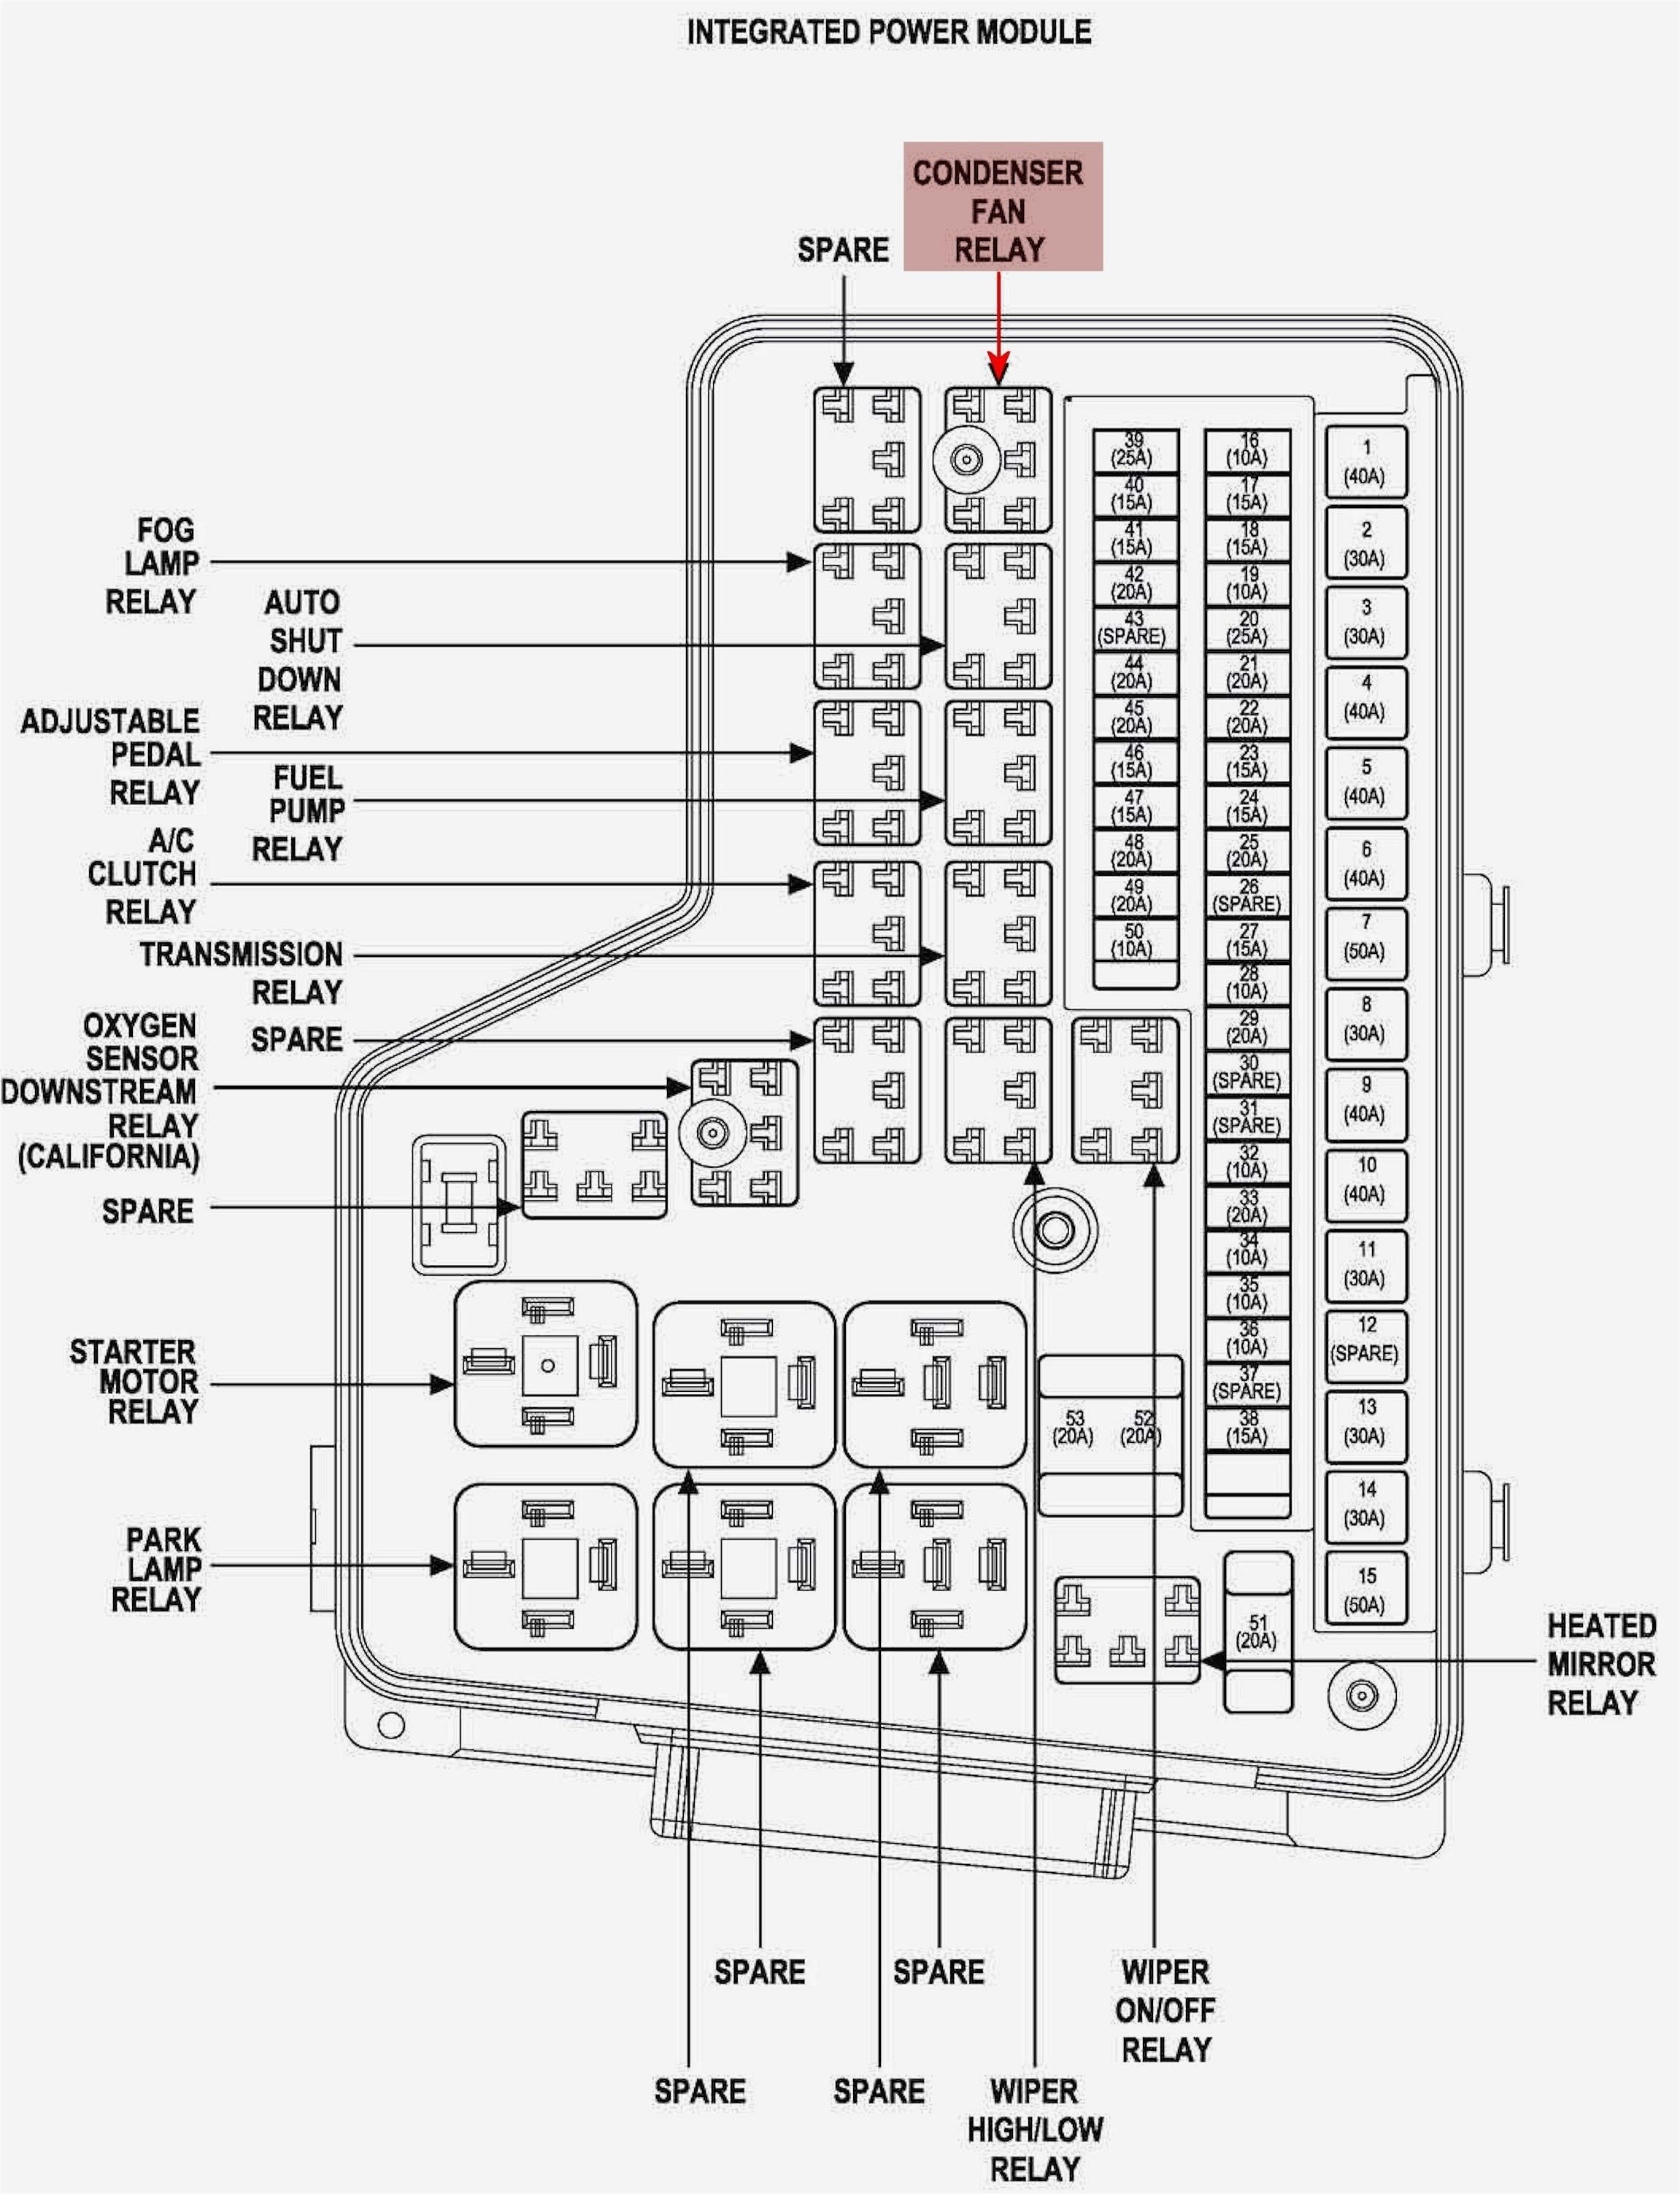 New 2011 Dodge Ram 1500 Radio Wiring Diagram #diagram #diagramsample  #diagramtemplate #wiringdiagram #diagramchart #worksheet… | Ram 1500, Dodge  ram 1500, Dodge ramPinterest